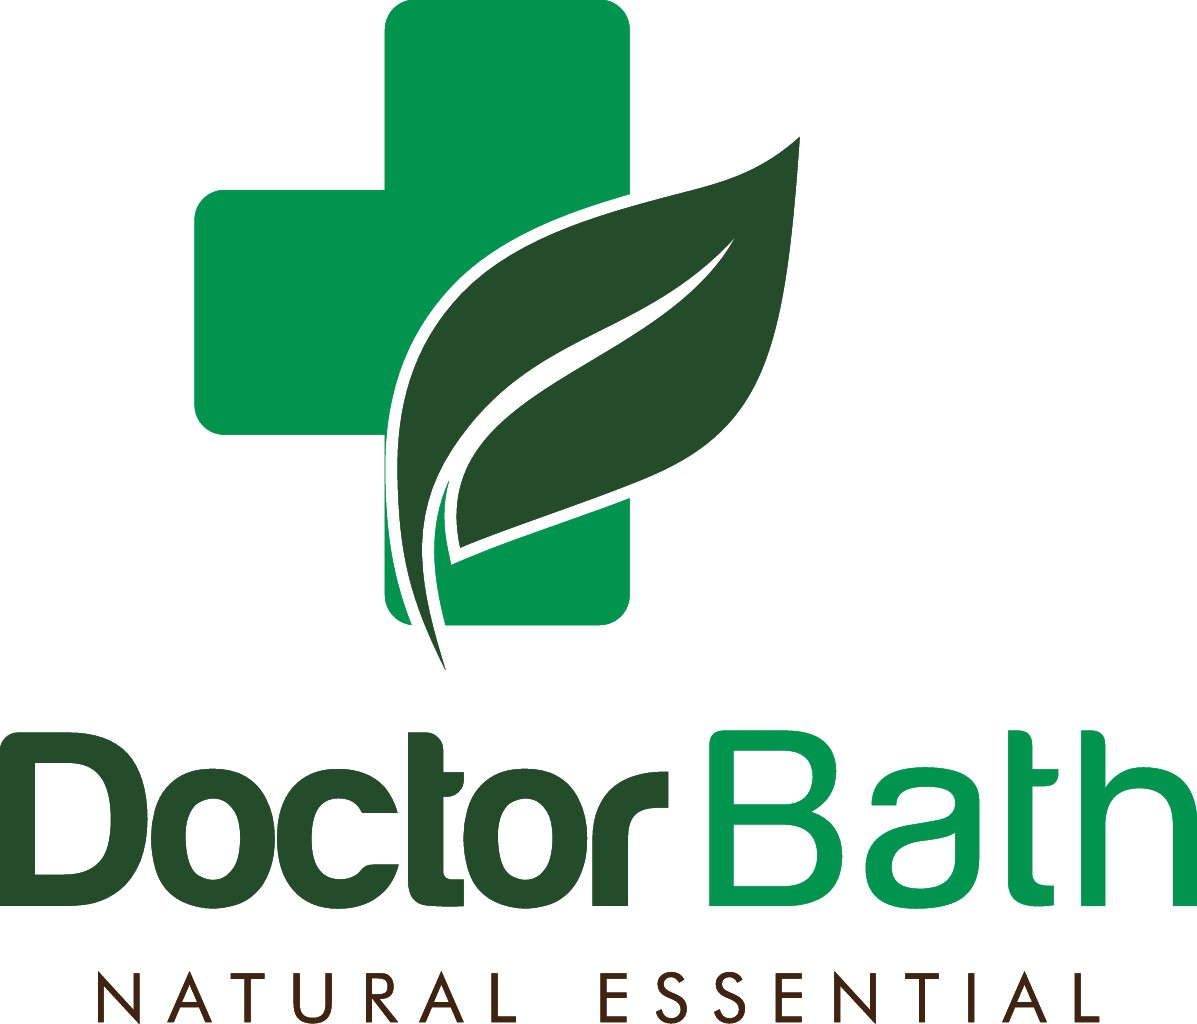 Nw logo for doctor bath